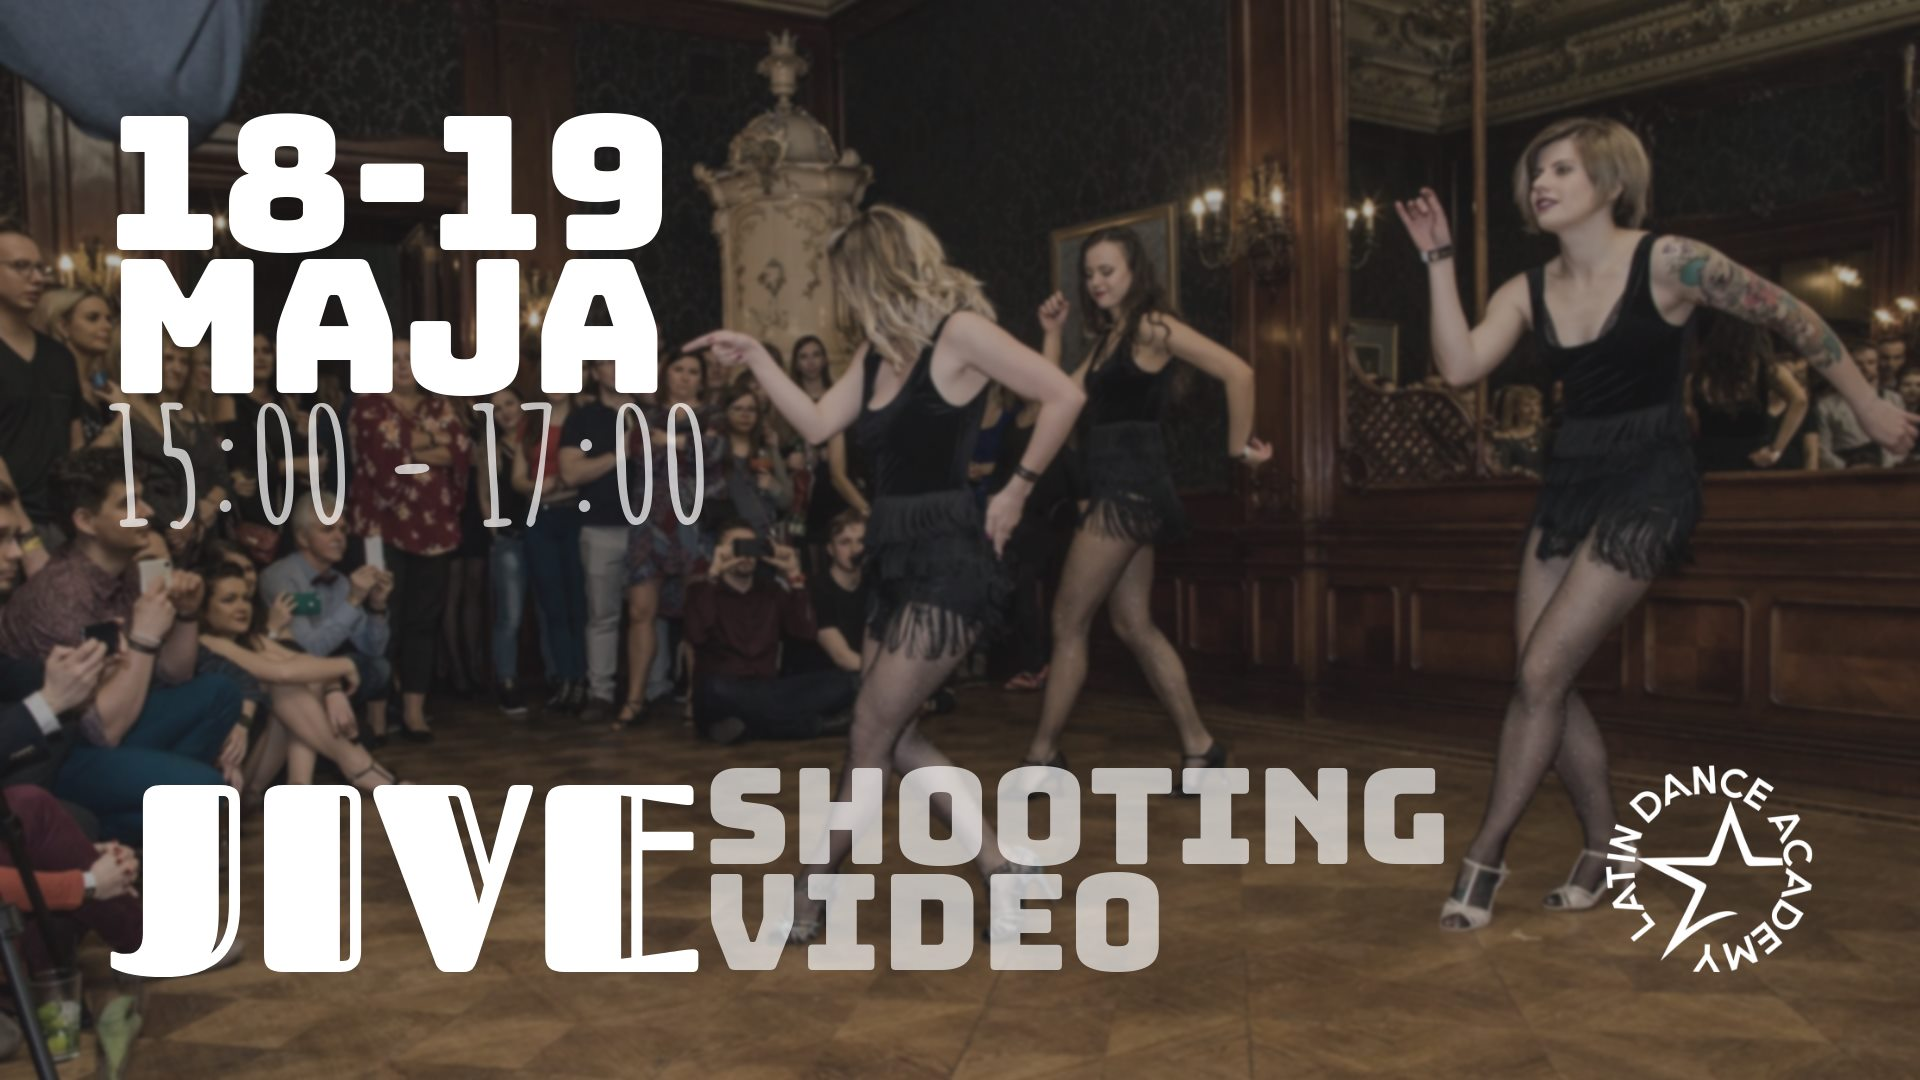 Jive shooting video